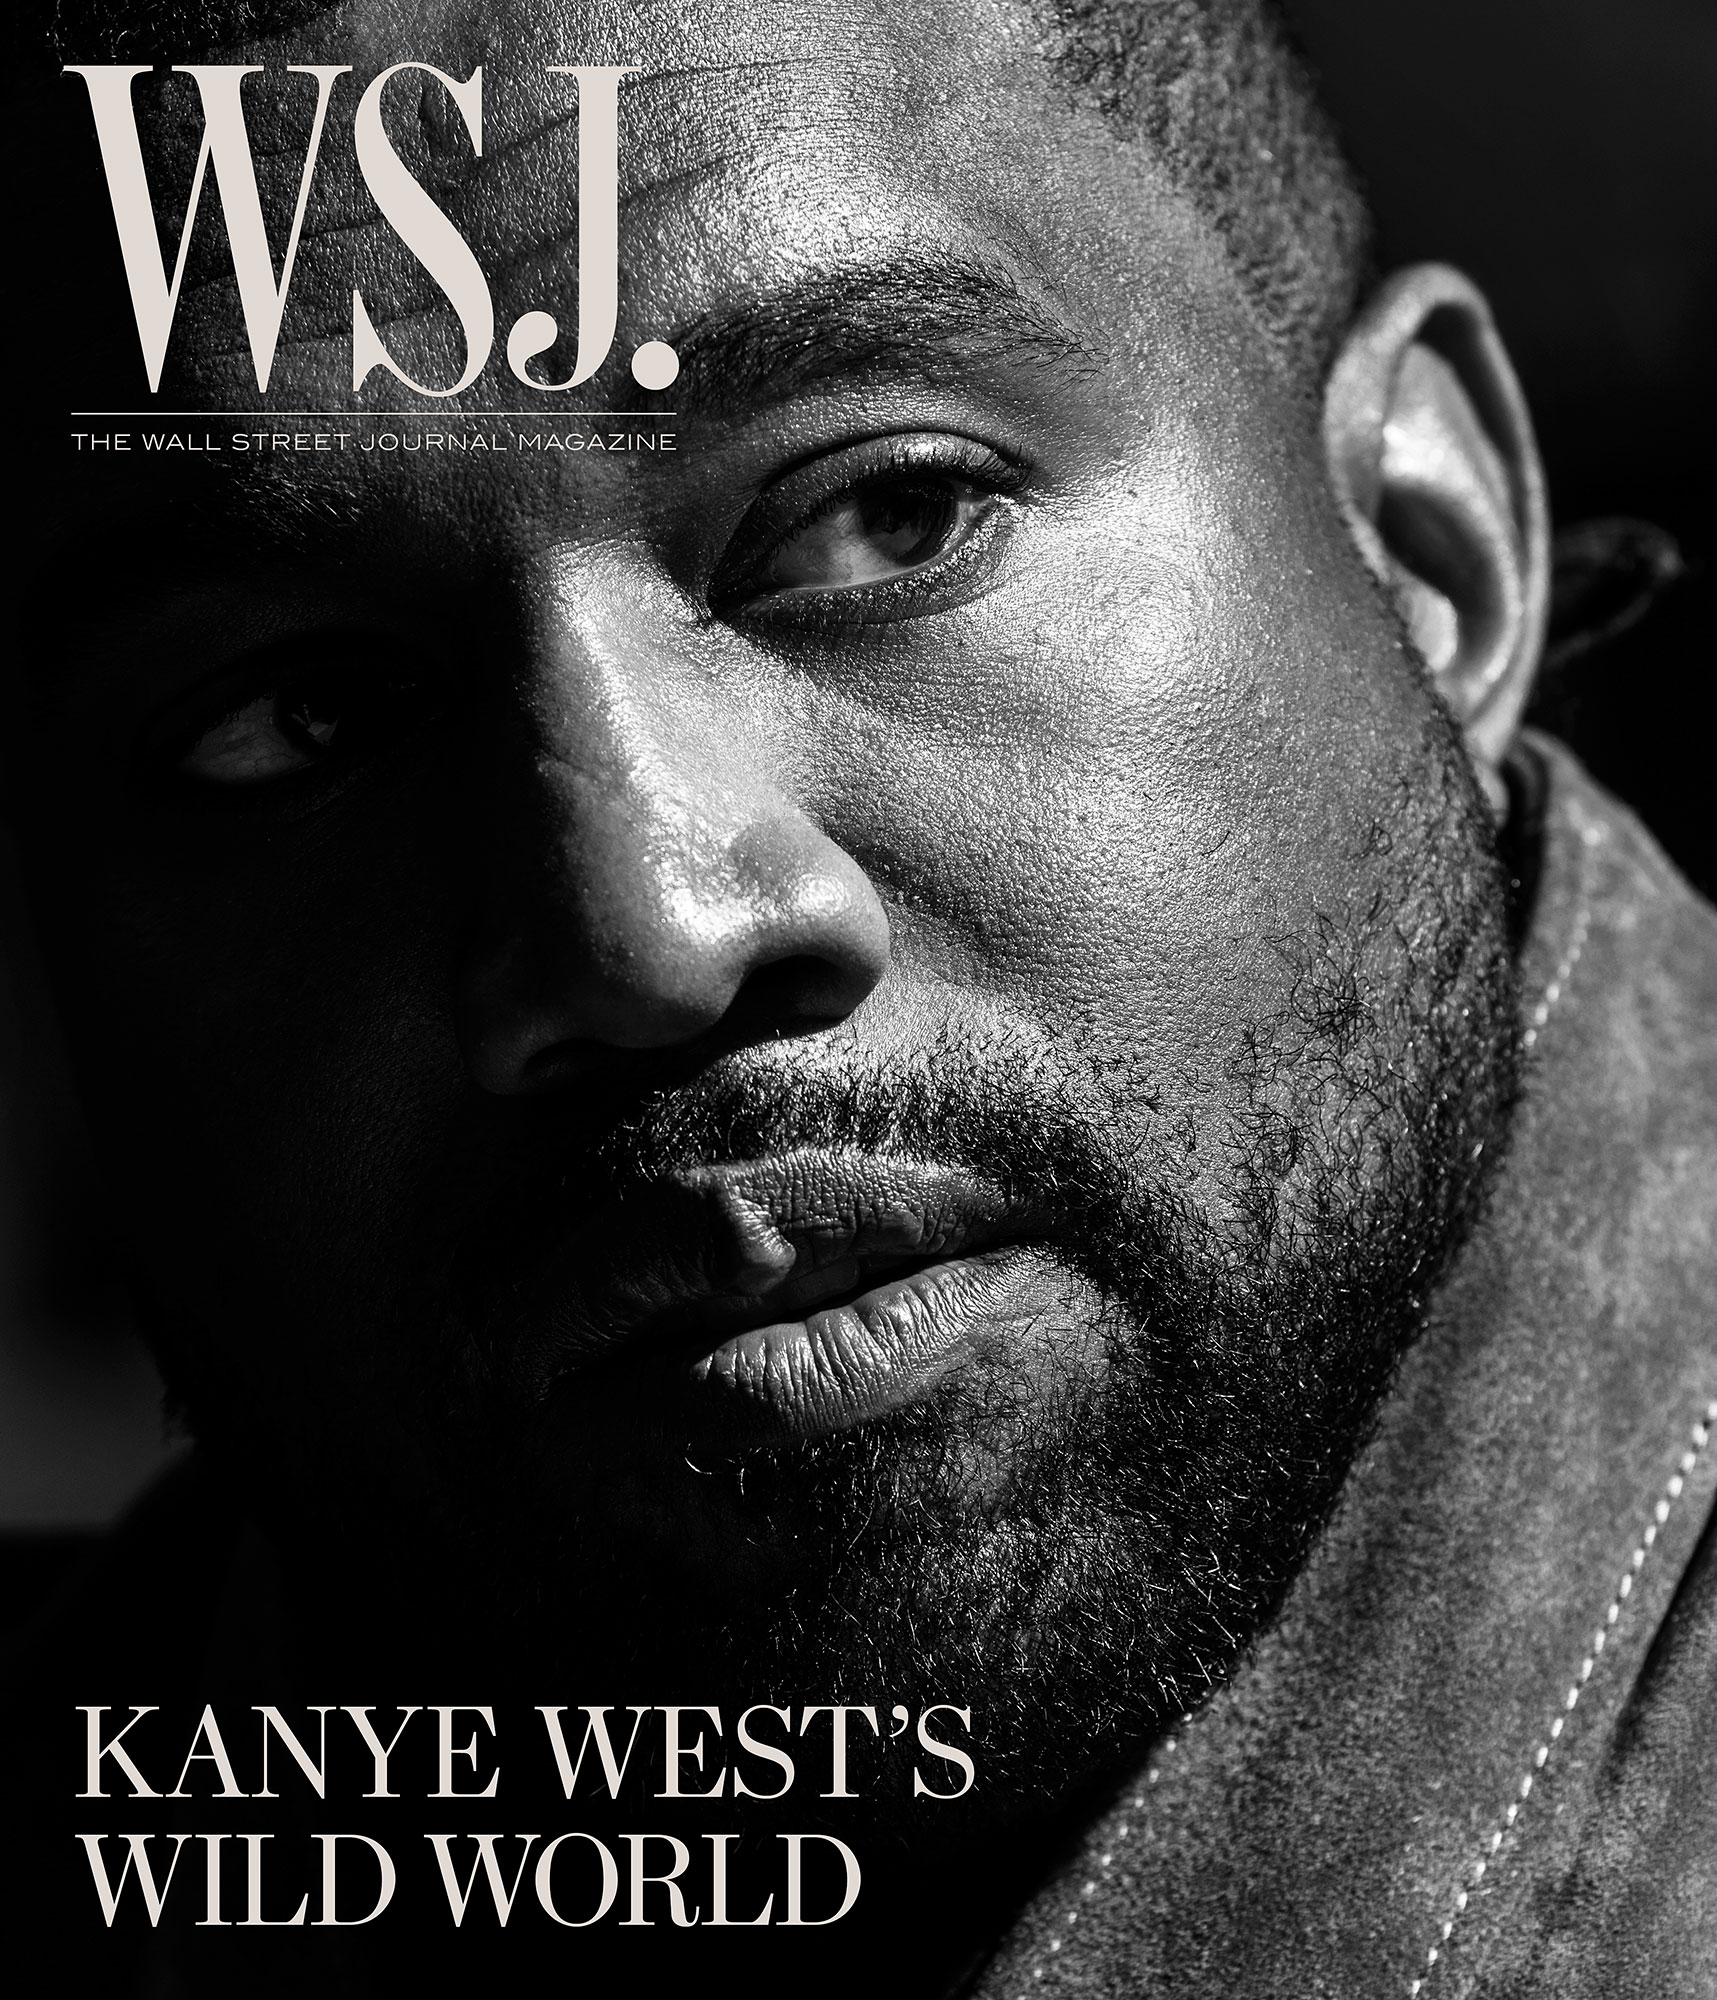 Kanye West Opens Up About Two Fashion Gigs He Lost Out On in WSJ Cover Story Interview